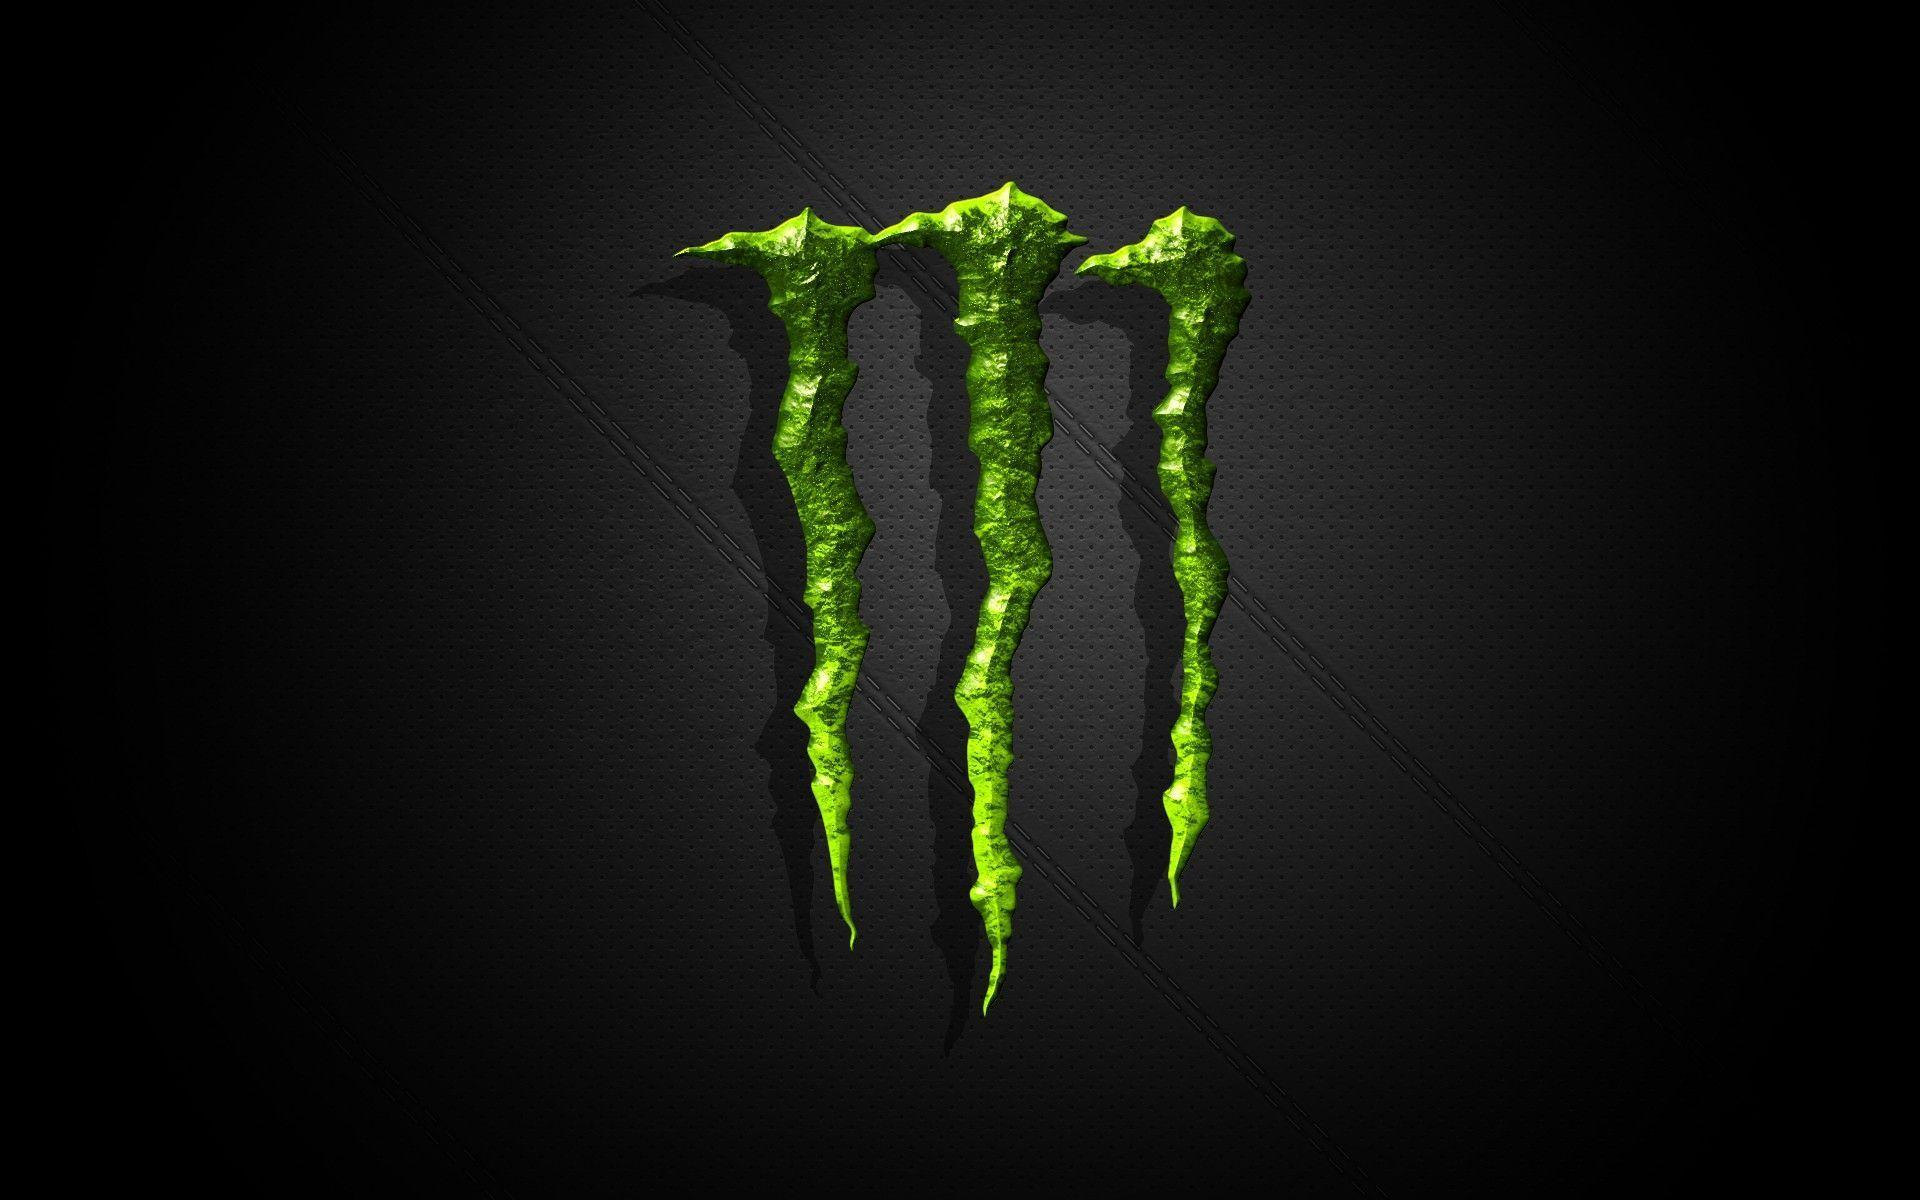 Monster Energy Wallpapers 2016 HD - Wallpaper Cave